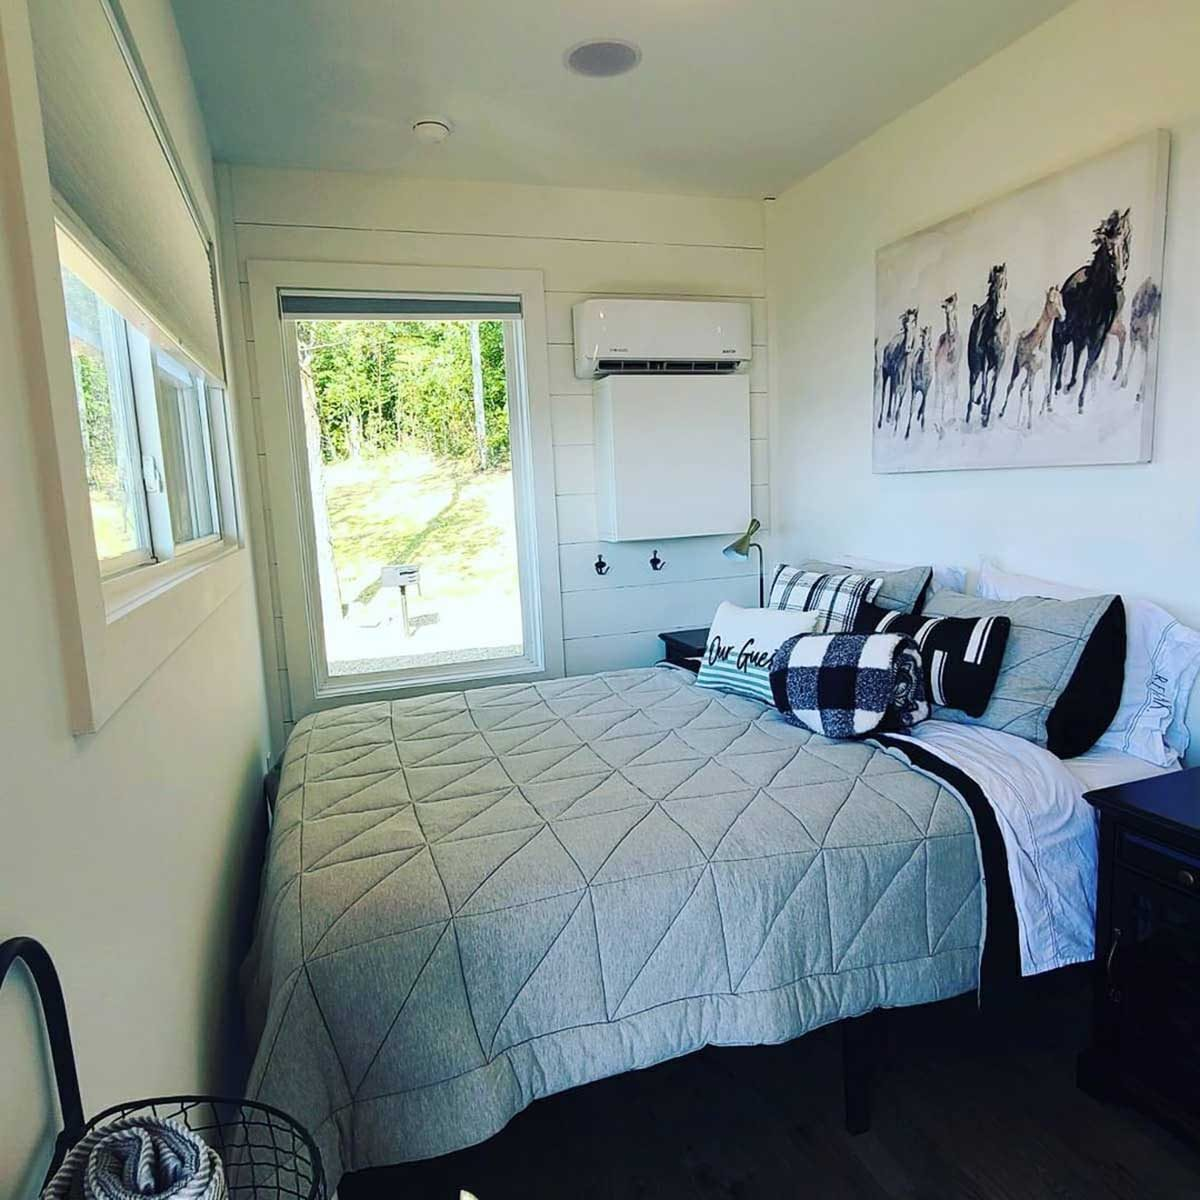 Container Home Bedroom 120262143 1620570434812010 4607686666970398820 N